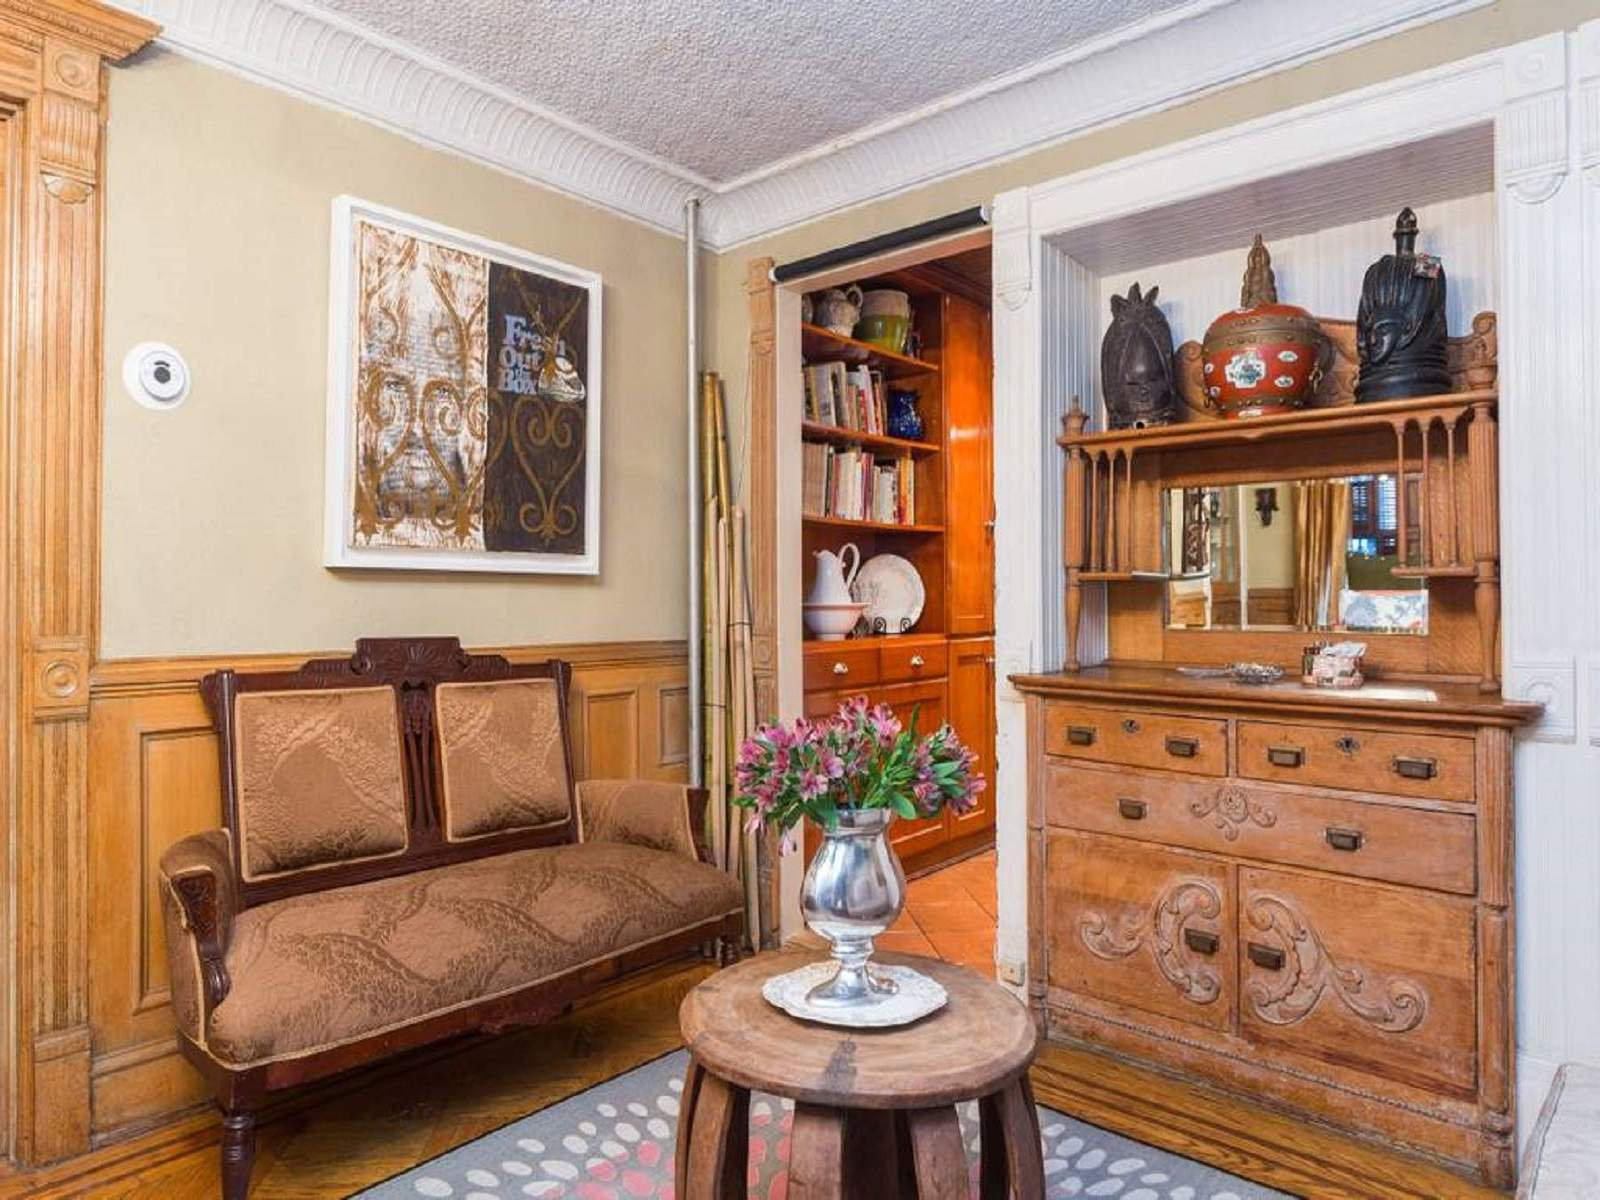 for 2 3m an amzi hill designed bed stuy townhouse with historic